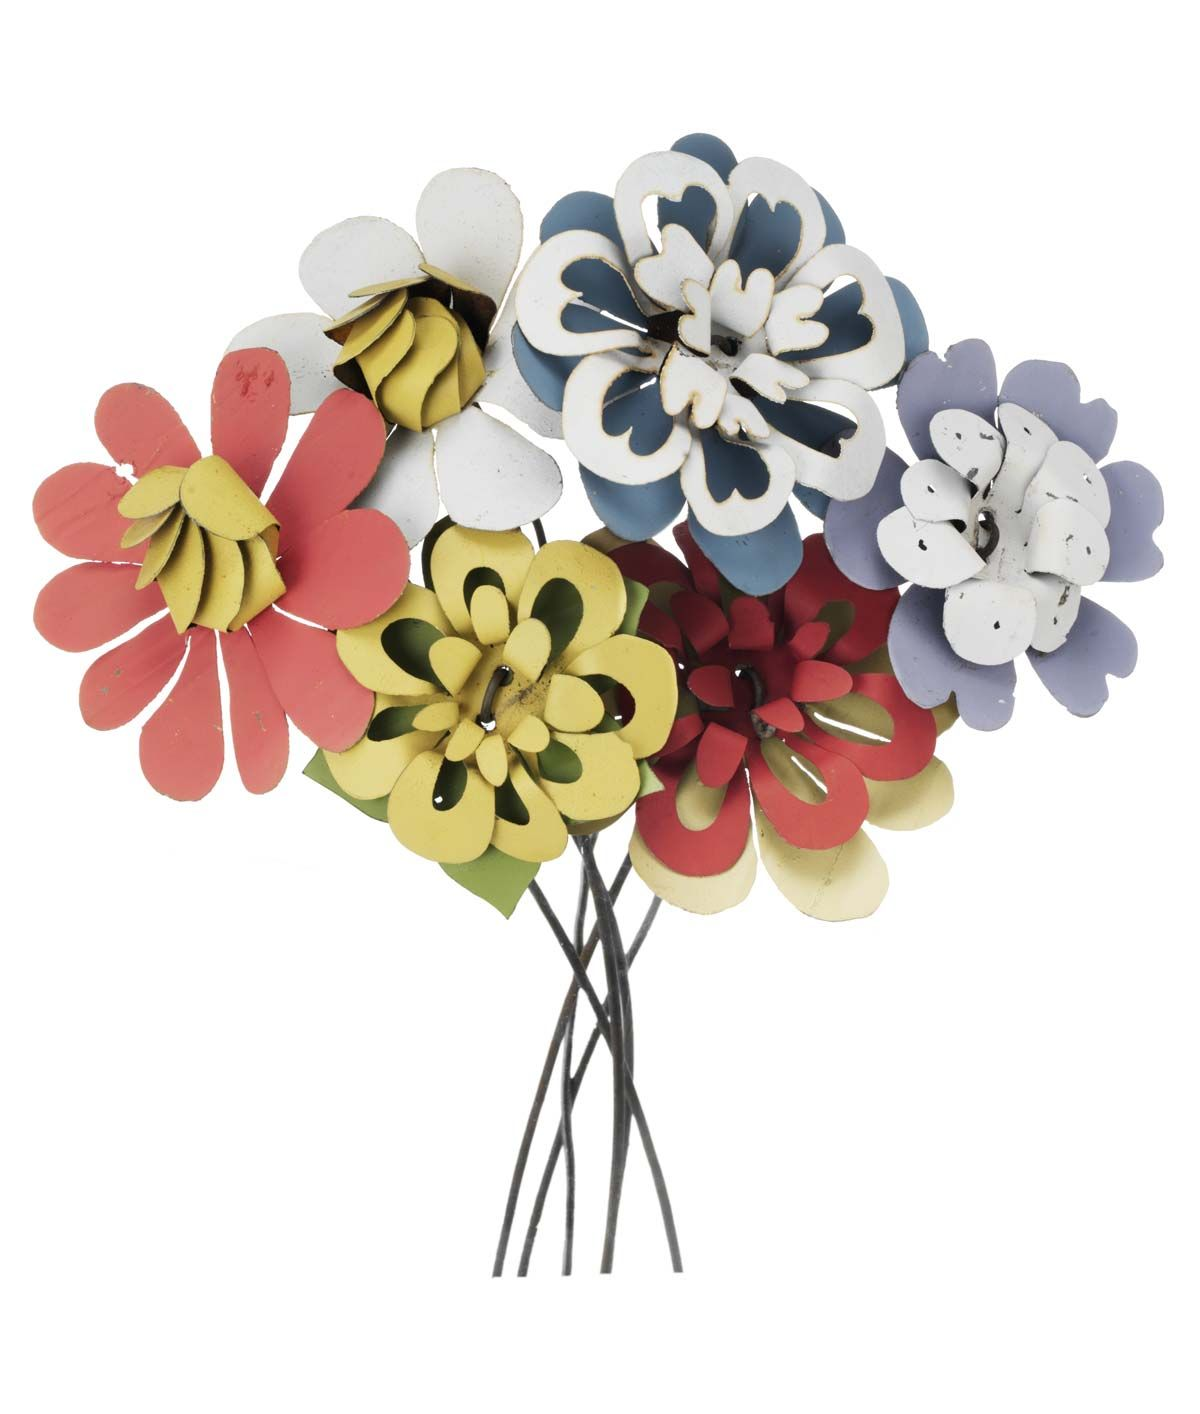 PASTEL RECYCLED TIN BOUQUET   Metal Flowers, Pastels, Garden Decoration   UncommonGoods